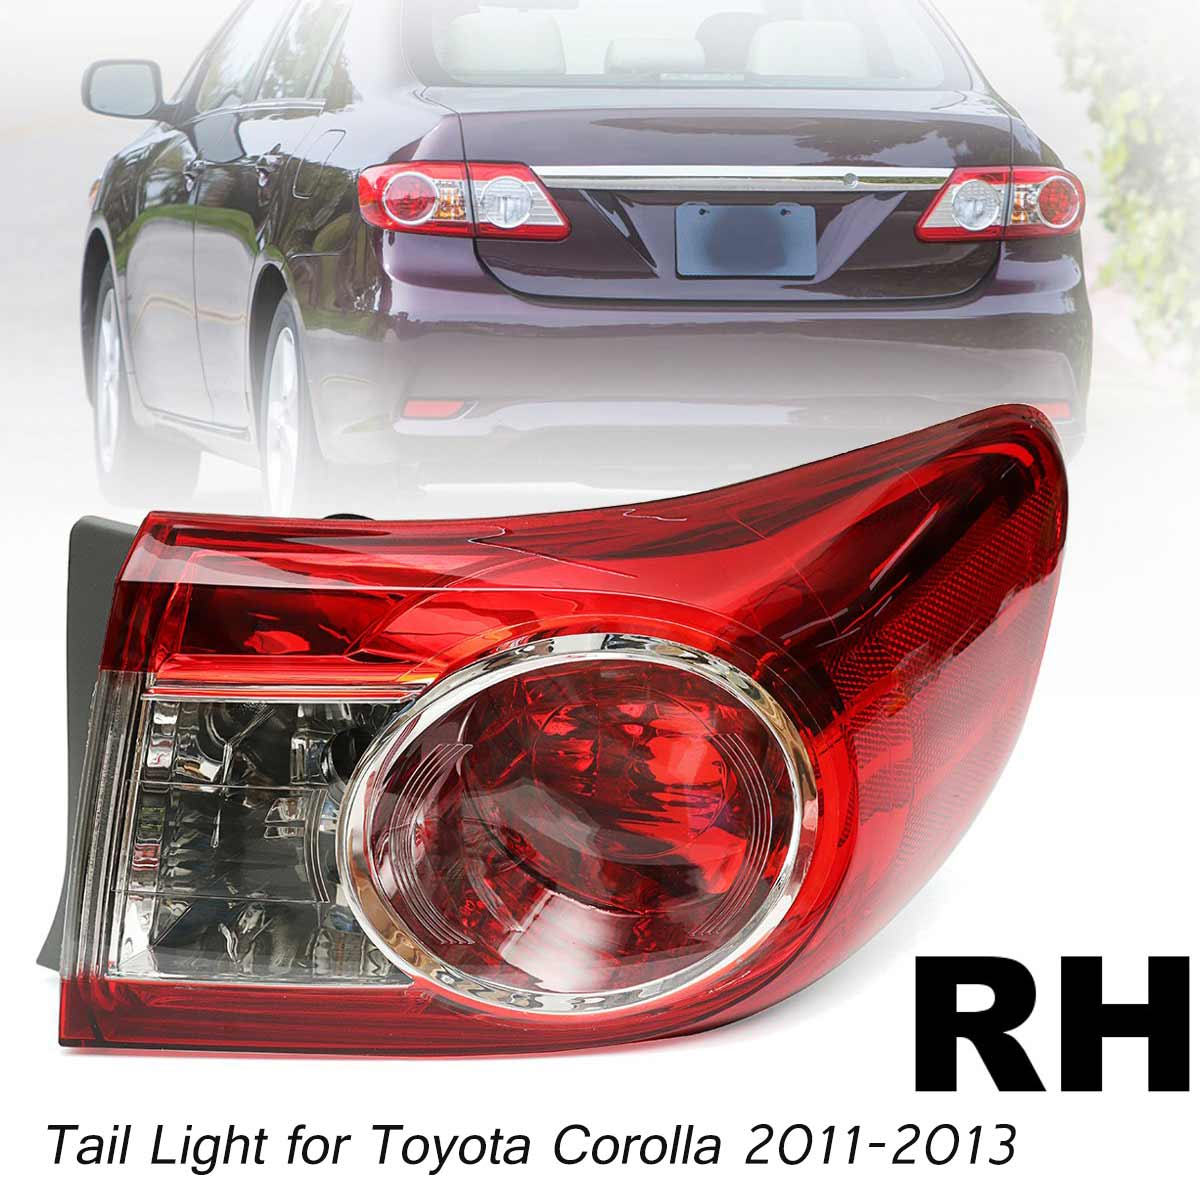 Driver Side Toyota Corolla Replacement Tail Light Assembly on Body